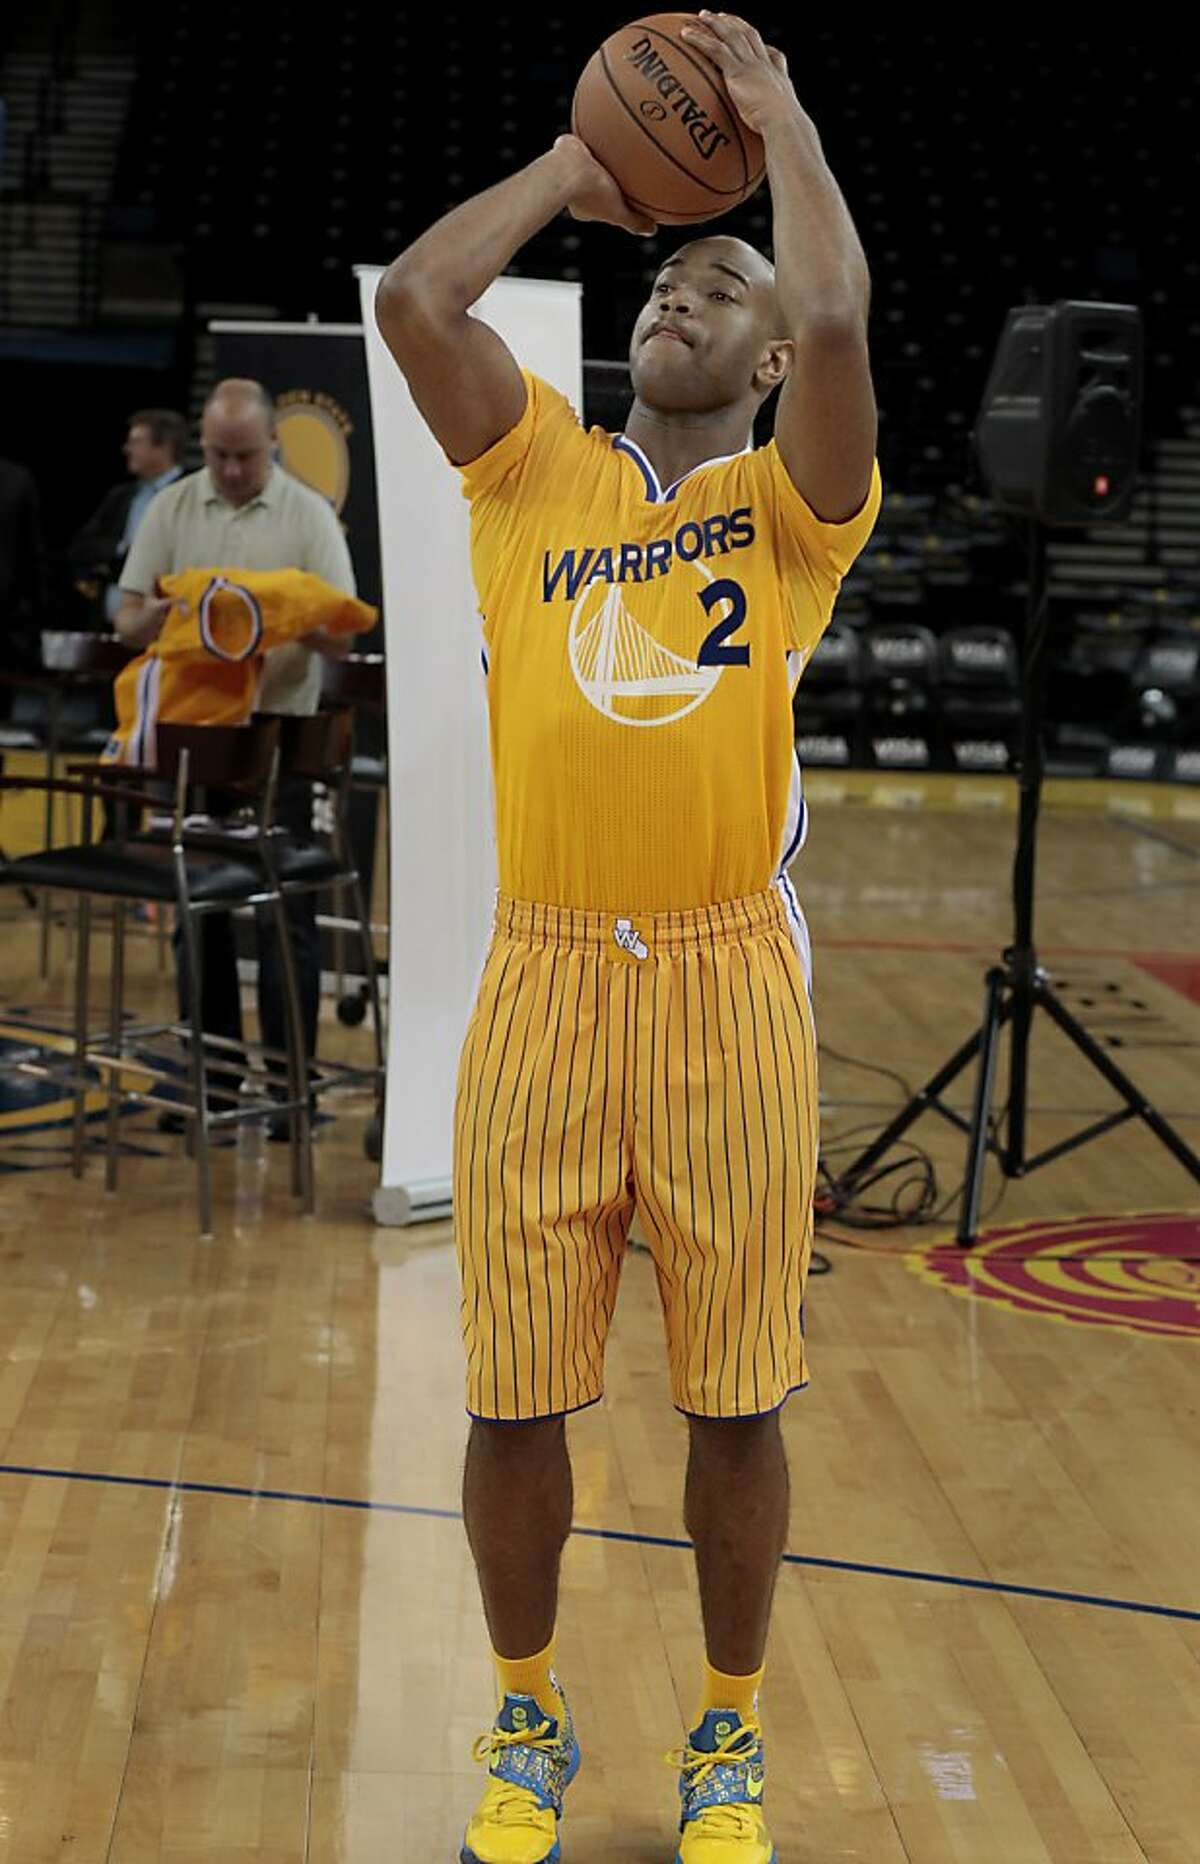 The Warriors Jarrett Jack took some shot in the new uniform. The Golden State Warriors and Adidas unveiled a new lightweight uniform for the team Monday February 11, 2013. The adizero short sleeve NBA uniform is 26 percent lighter than the current uniforms.